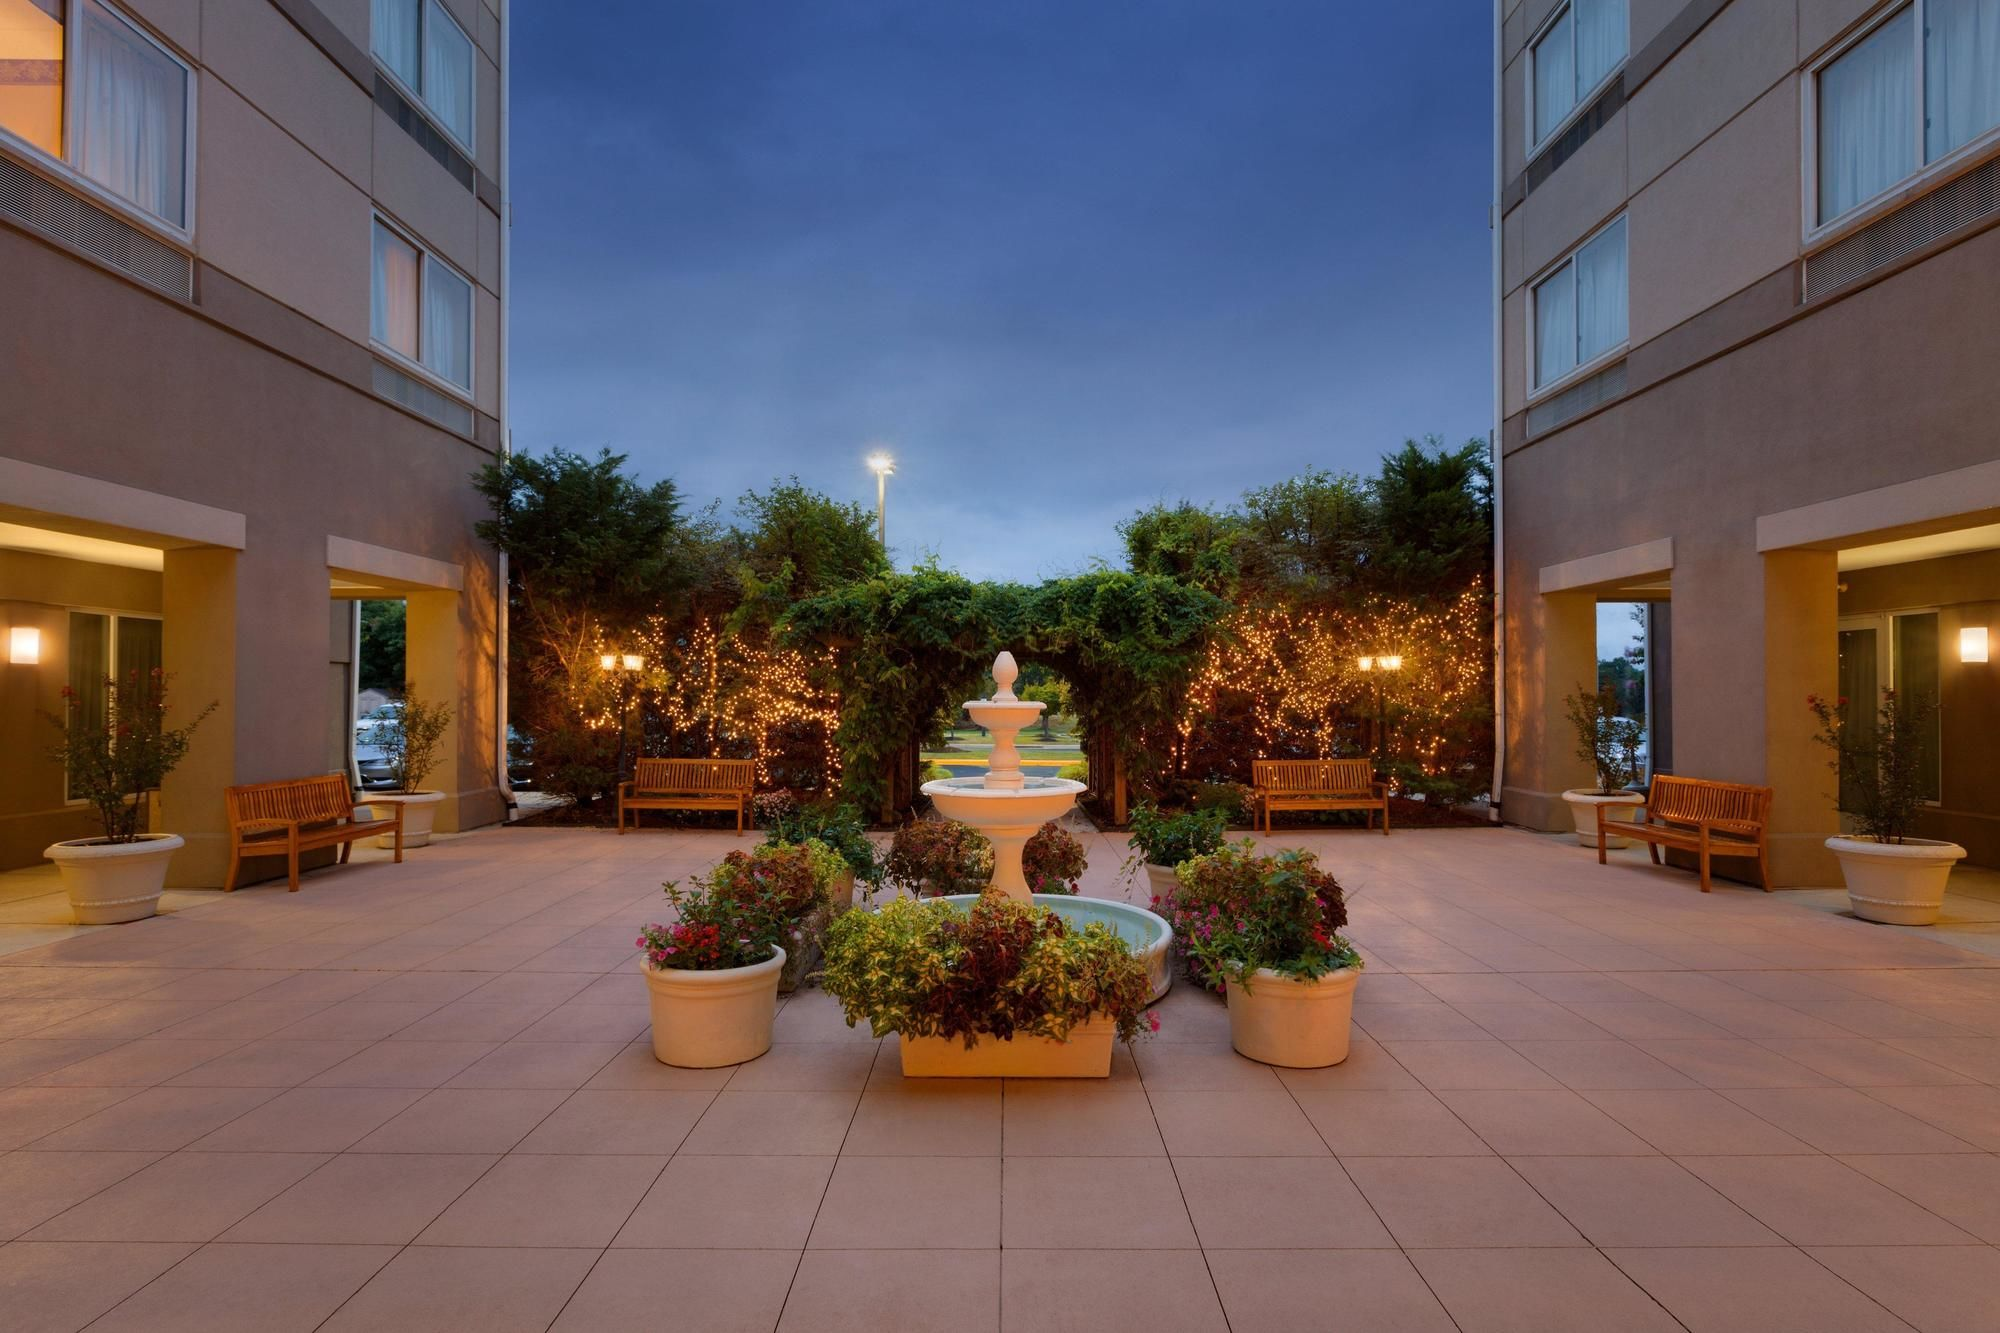 fairfax hotel coupons for fairfax virginia freehotelcoupons